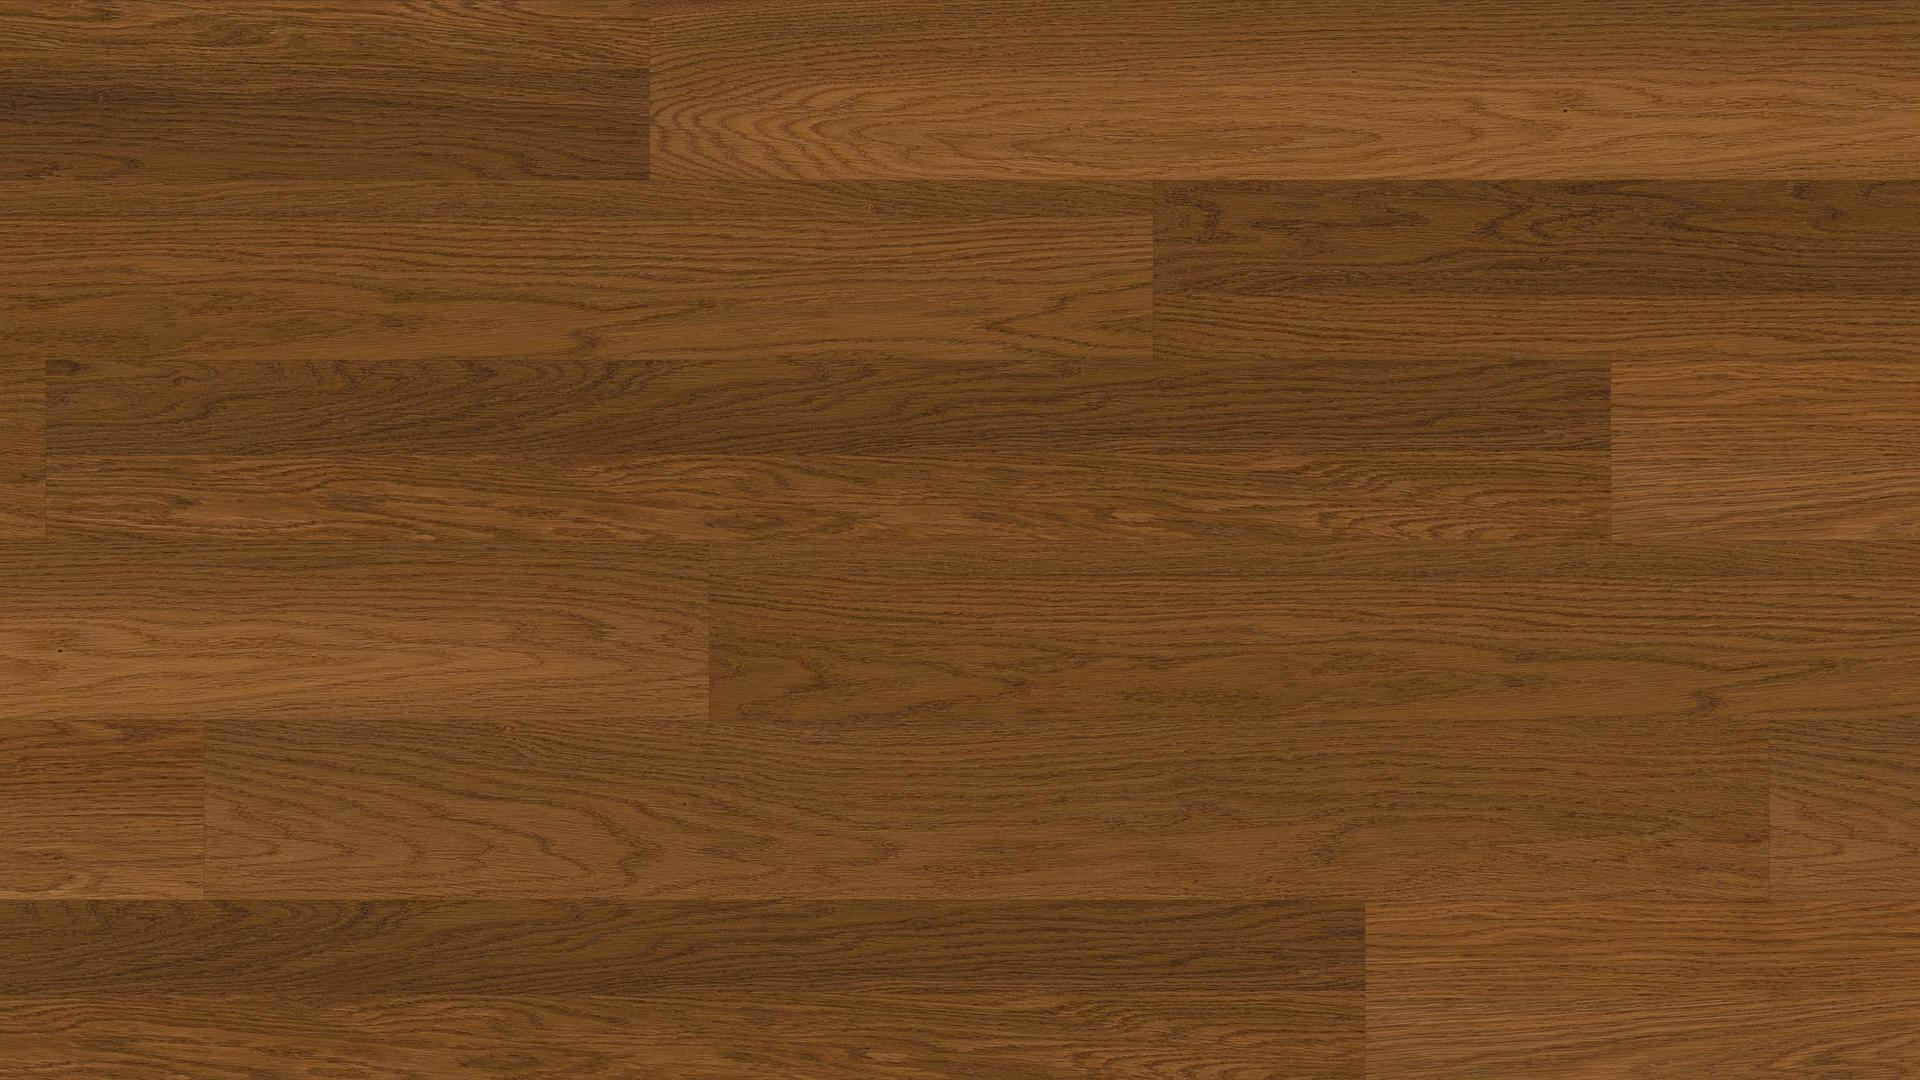 Layed Area wood floor Veneer Parquet EI40AB0 Oak Maron LM